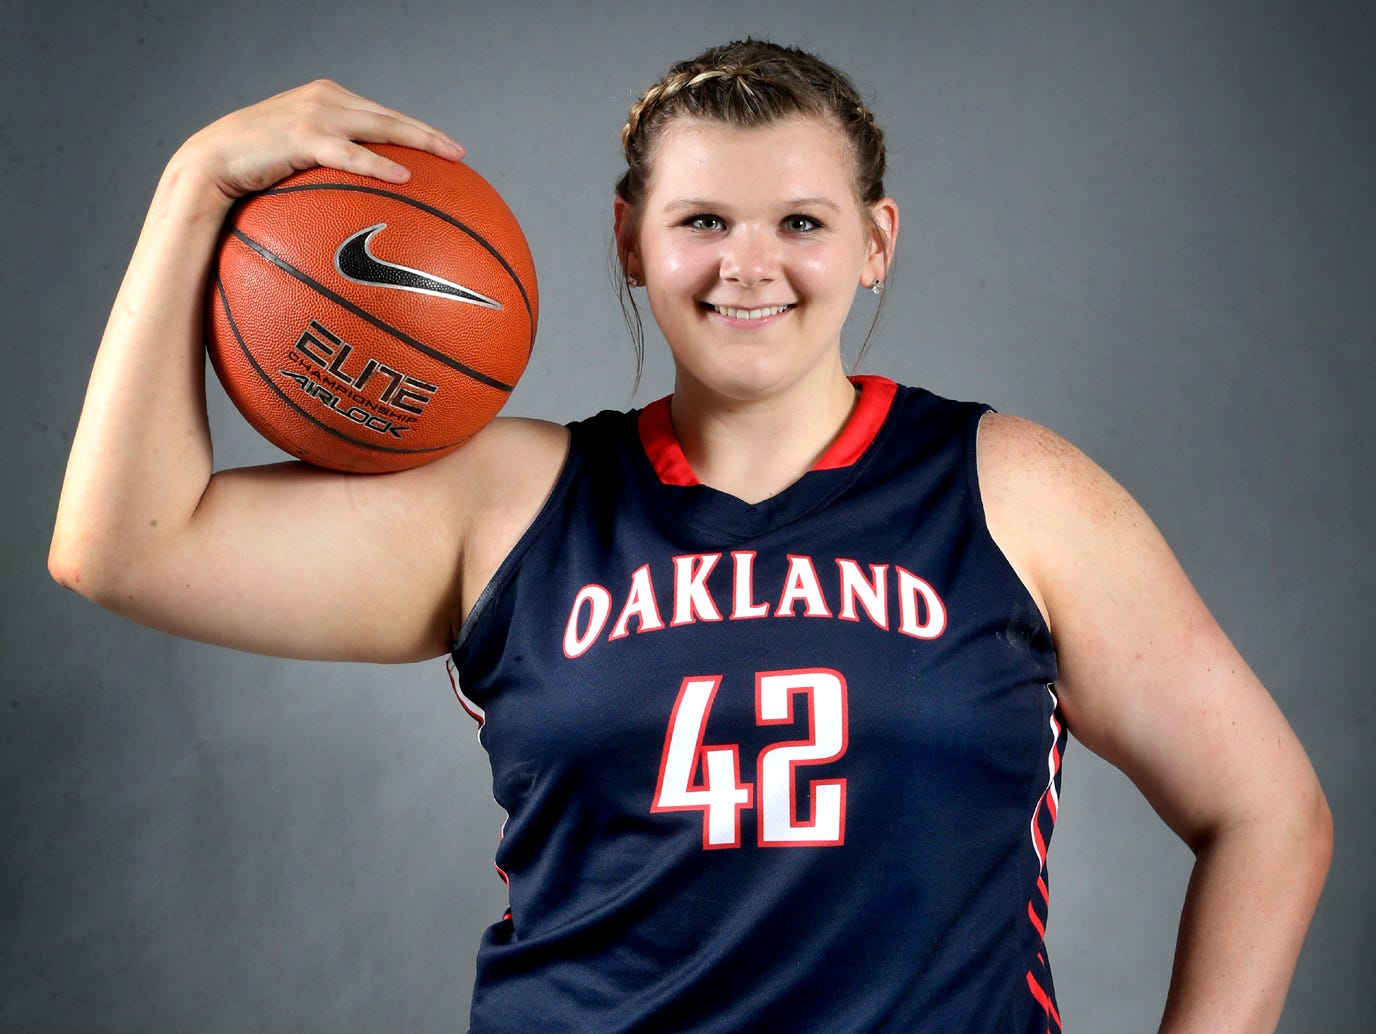 Shelby Gibson is one of the players on the all-area girls basketball team. Photo shot in the studio on April 9, 2015.